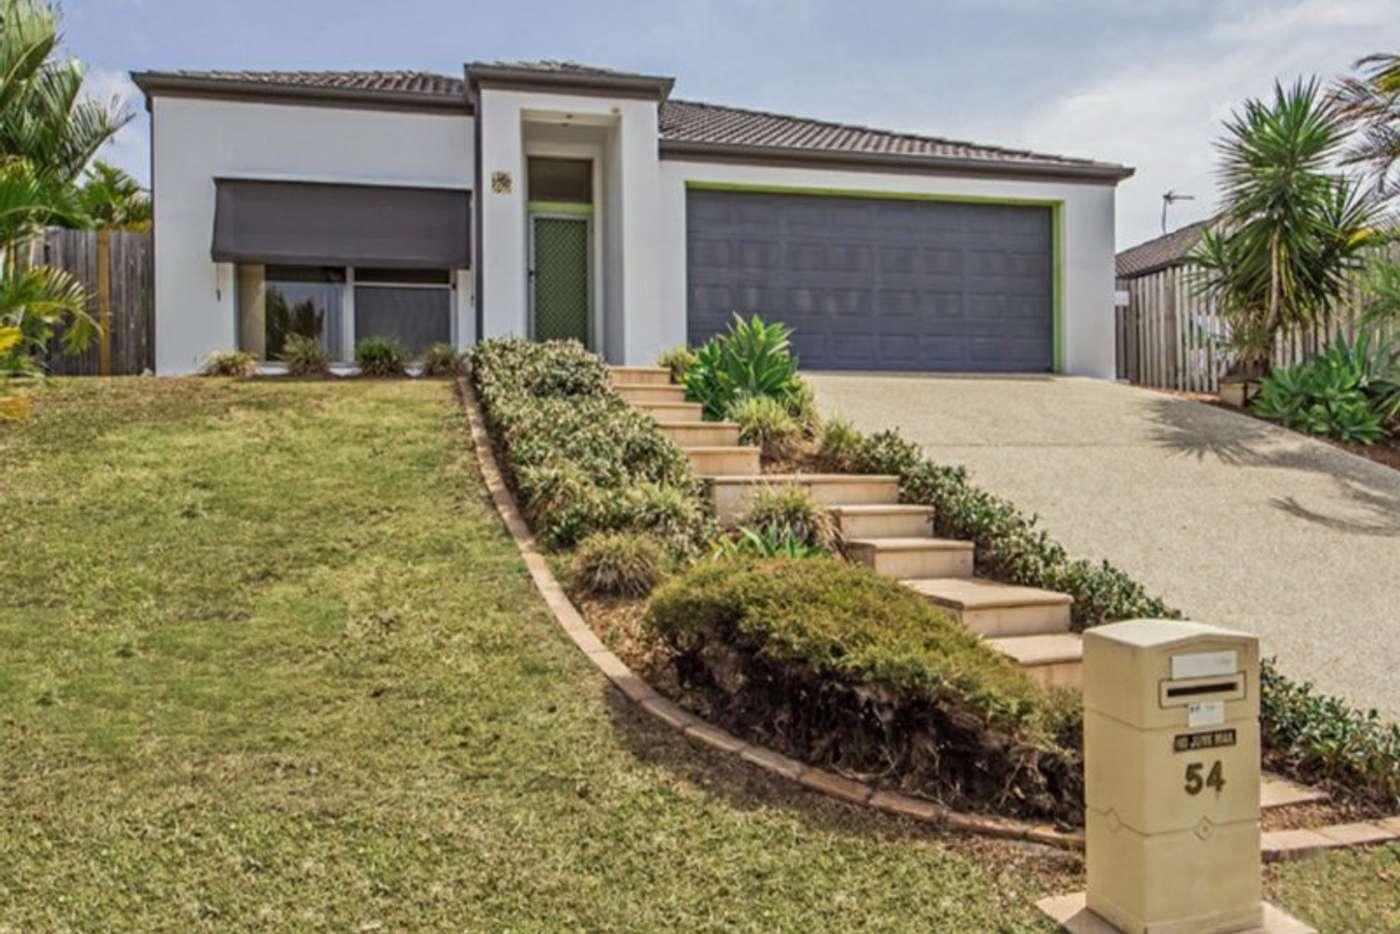 Main view of Homely house listing, 54 Merrilaine Crescent, Merrimac QLD 4226